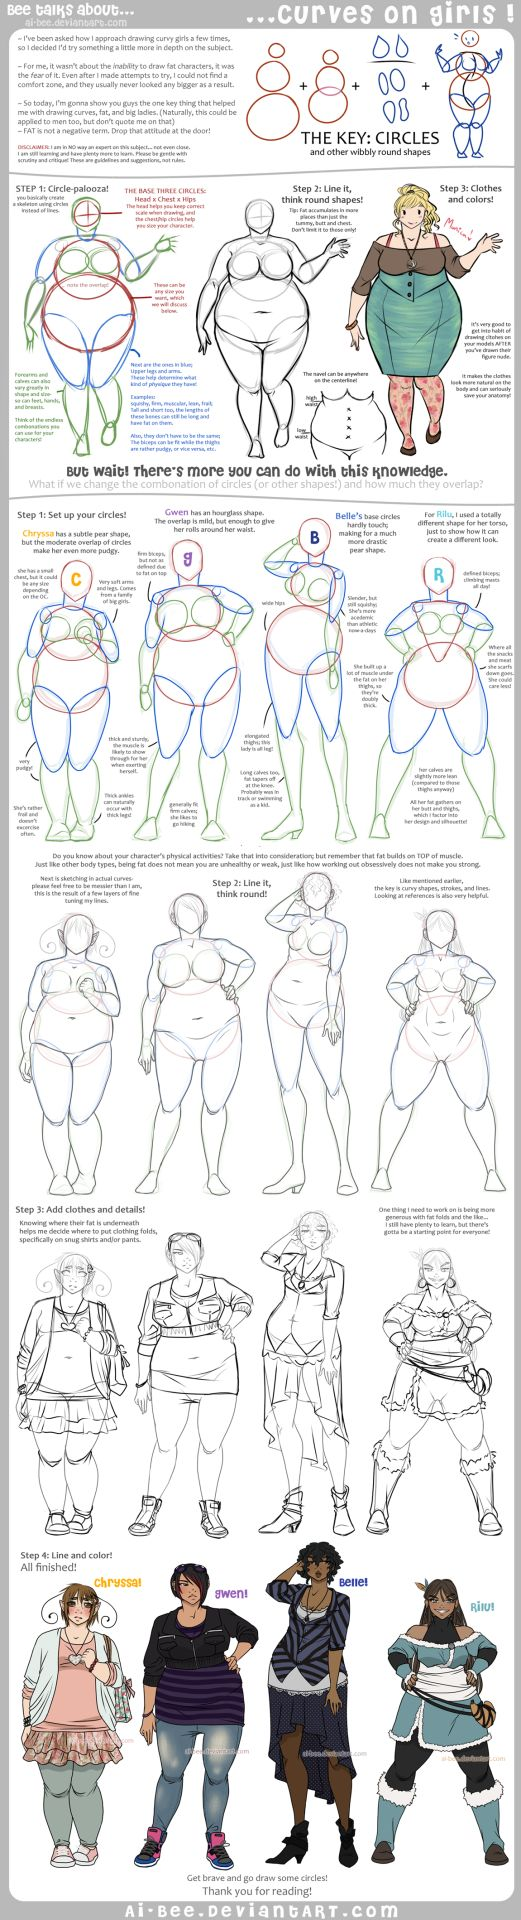 eschergirls:  juniysa:  Hey new followers! In addition to writing, I also reblog art and great writing/drawing tips. This tutorial is incredible if you are a character designer looking to diversify your female characters. Adding weight to a character is not as simple as drawing a simple body and curving the lines; you have to know the body structure to get it right. A helpful guide for comic artists, character designers, and cosplayers alike. Tutorial - Curves on Girls by *Ai-Bee Edit…